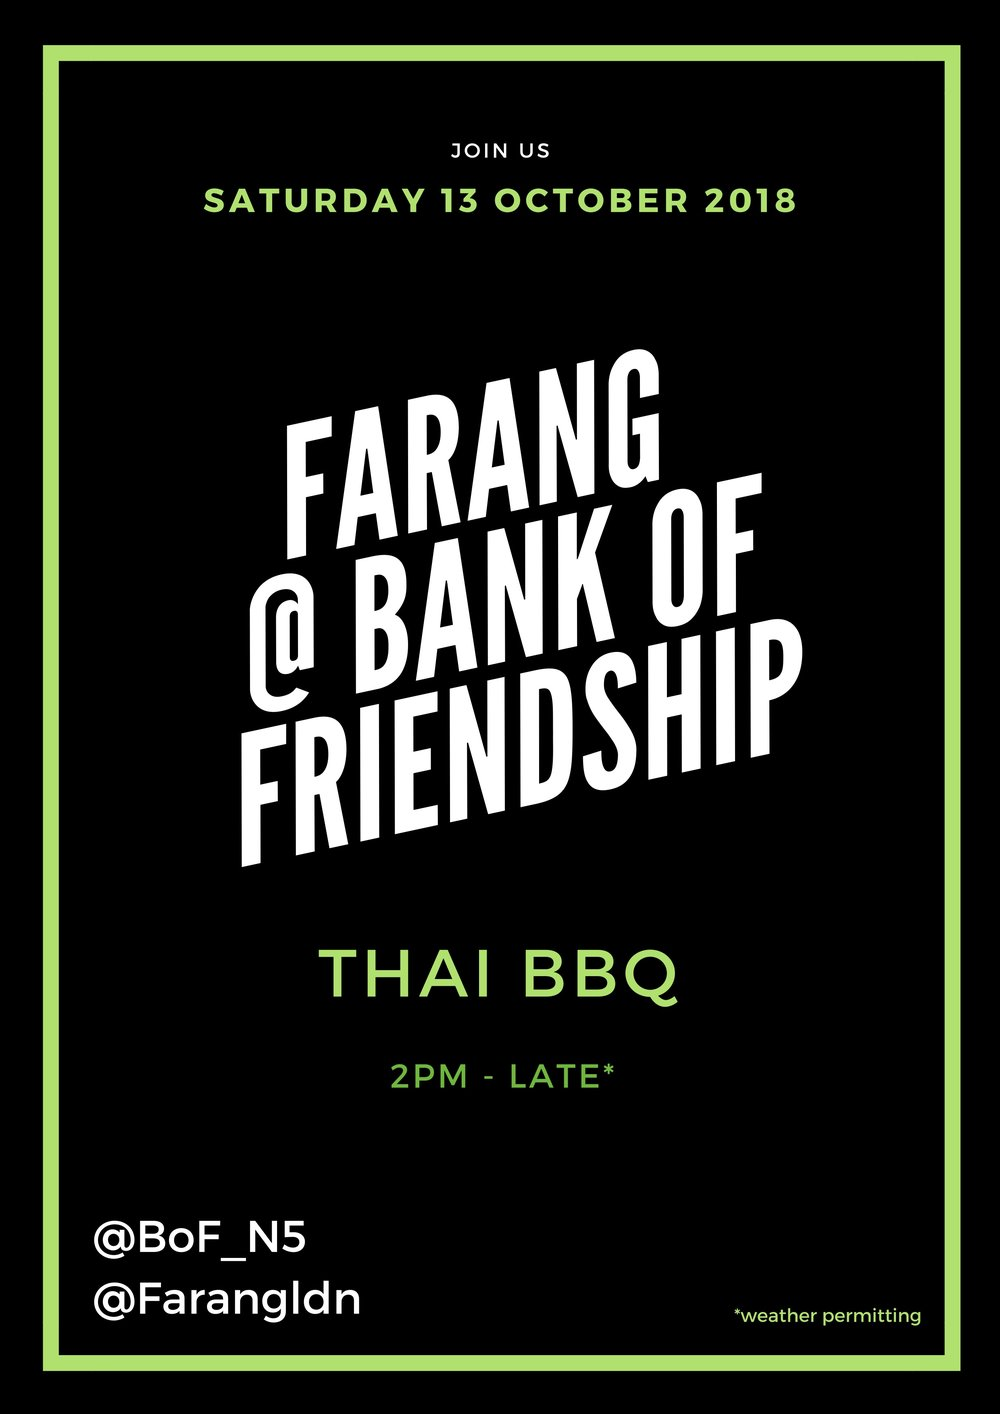 01_FRONT_farang@ Bank of friendship.jpg